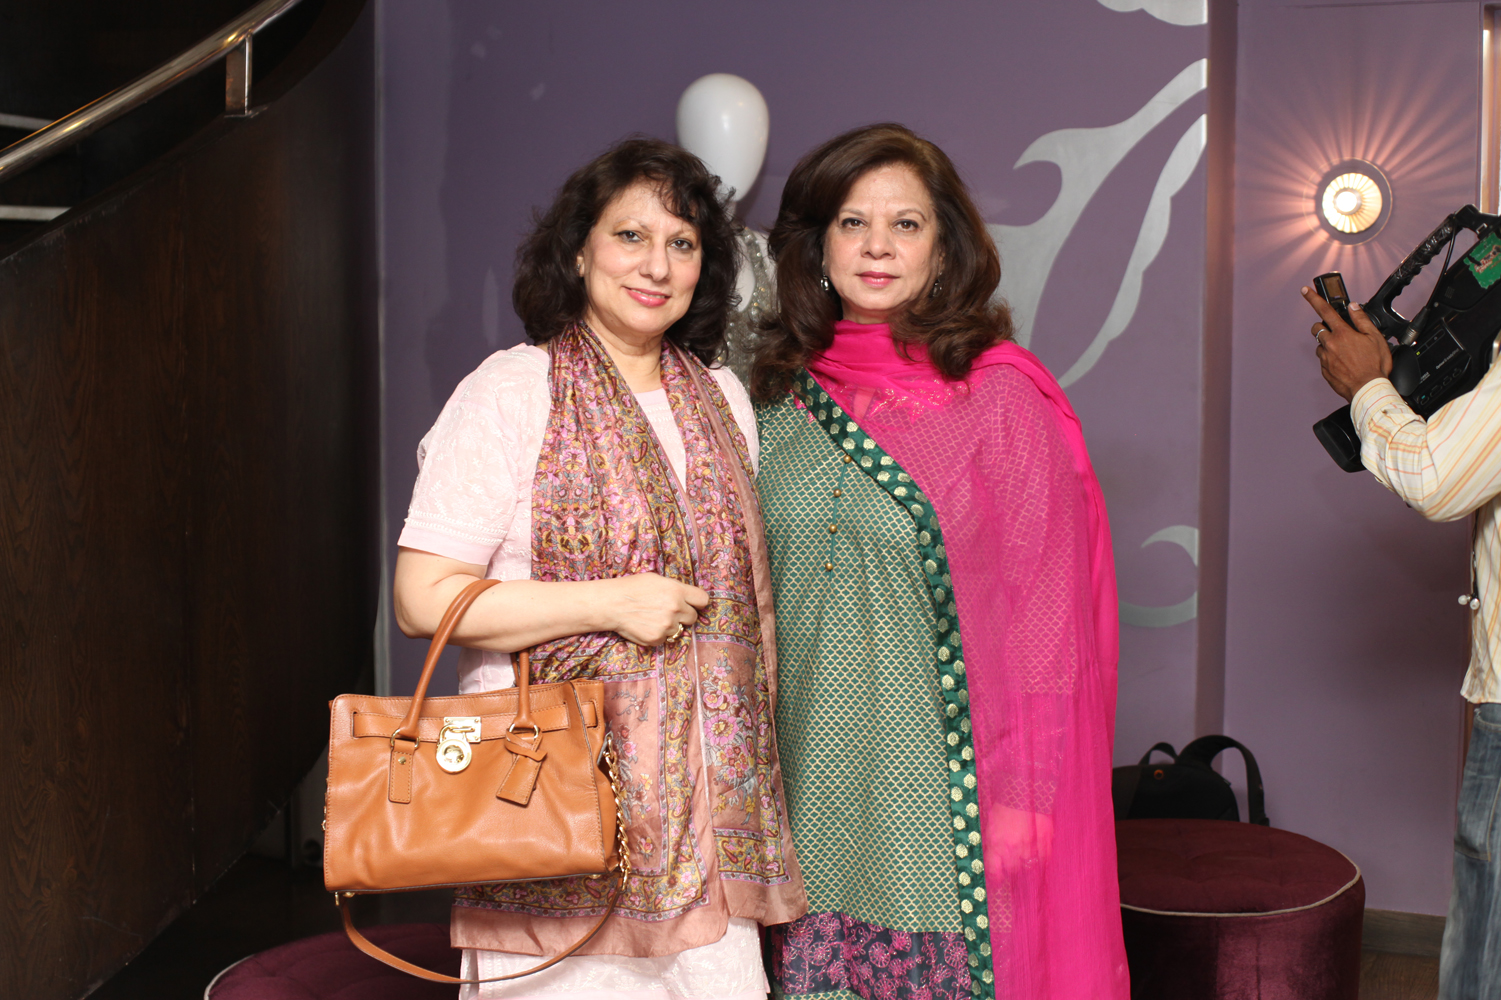 Maliha Khalid and Sabia Ali